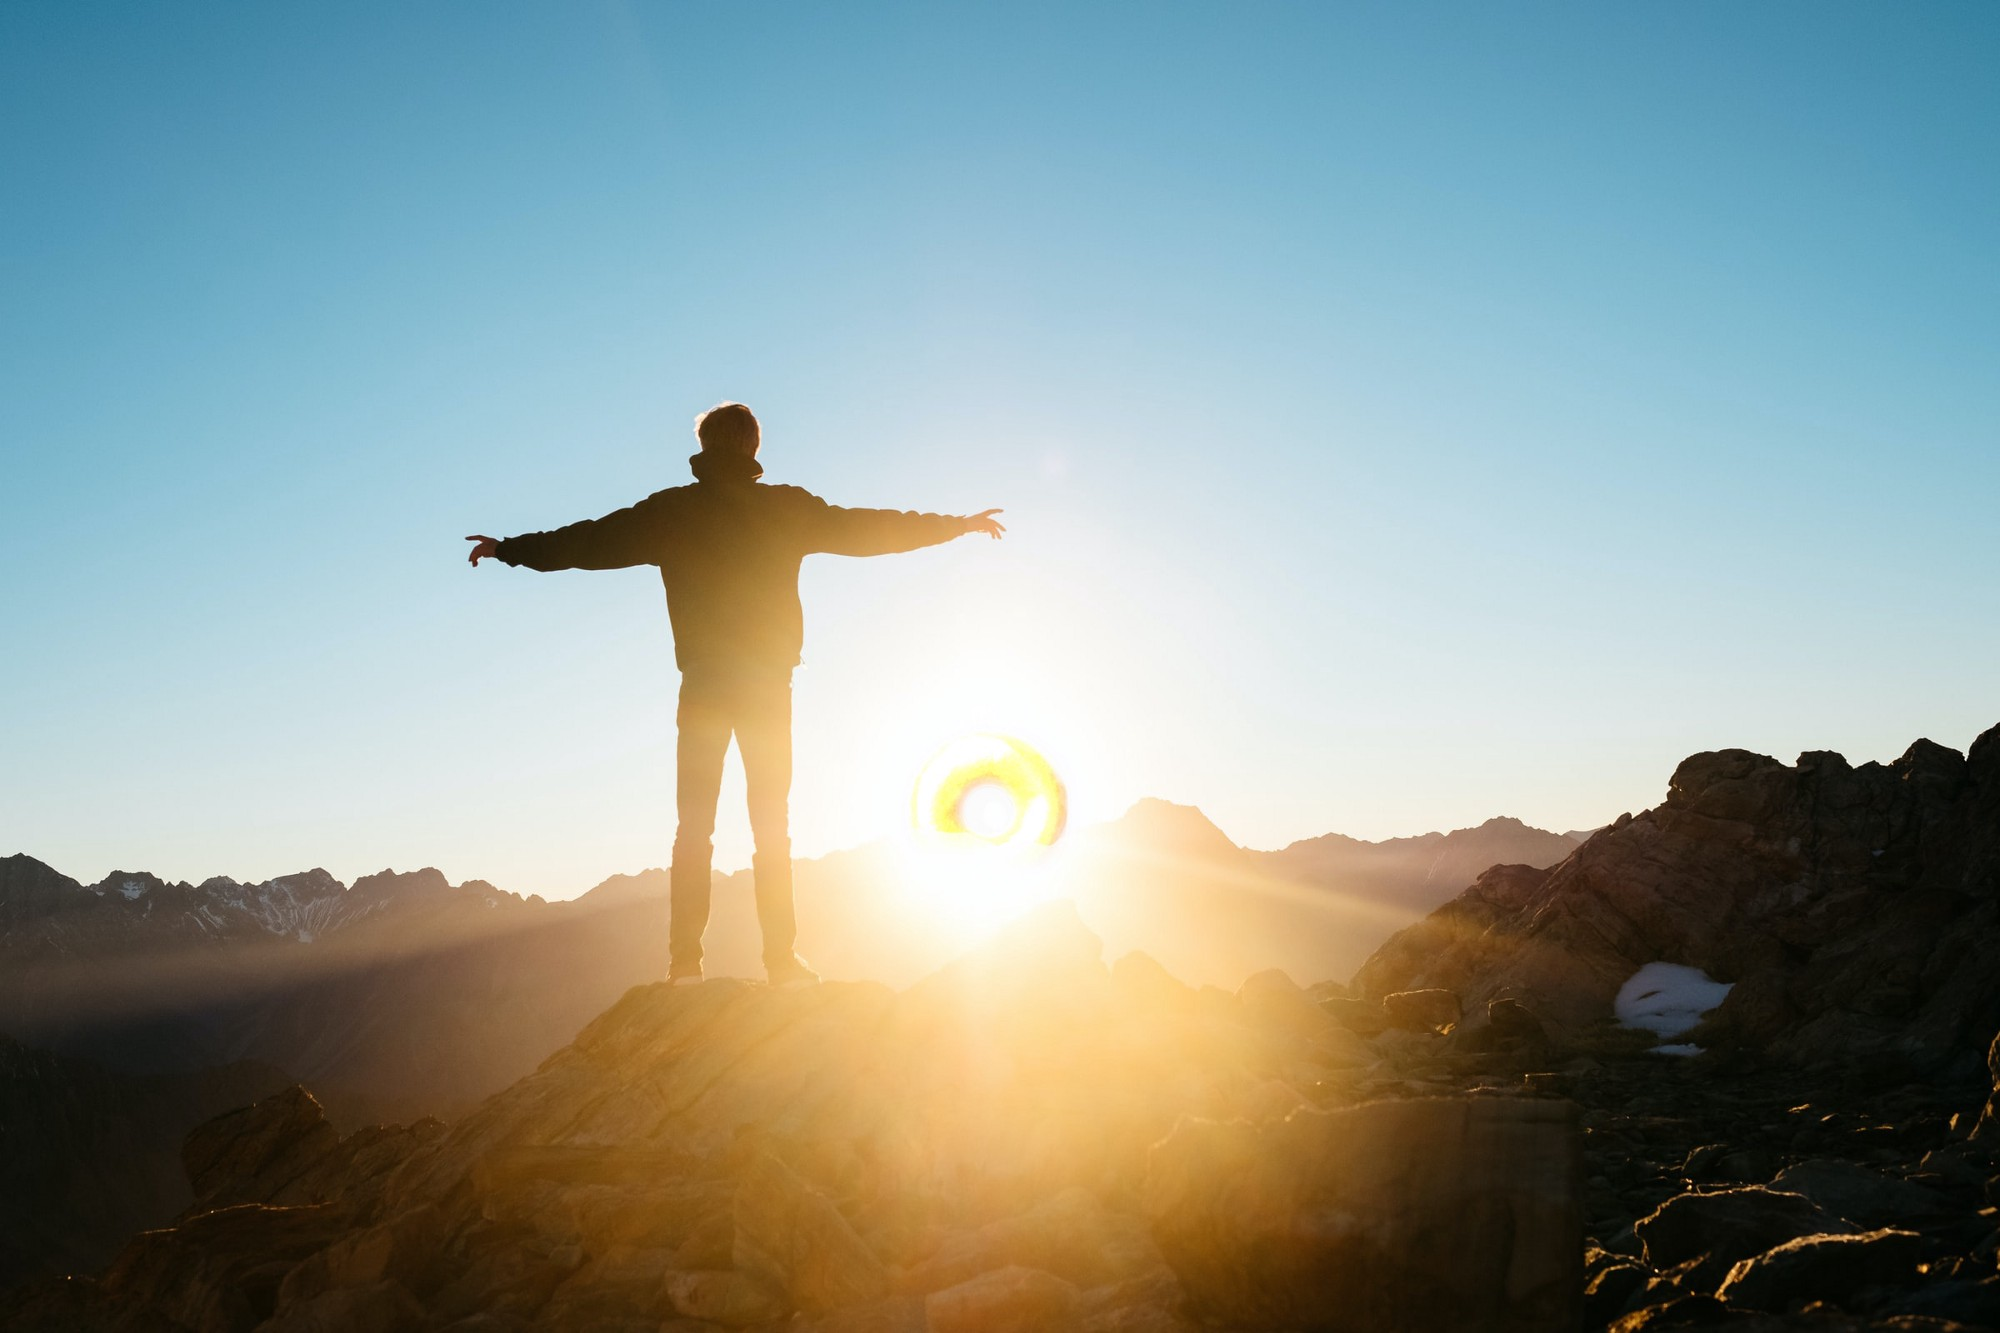 A man basks in the light of a mountain sunrise with a difference, the sun is instead a shining glazed doughnut.